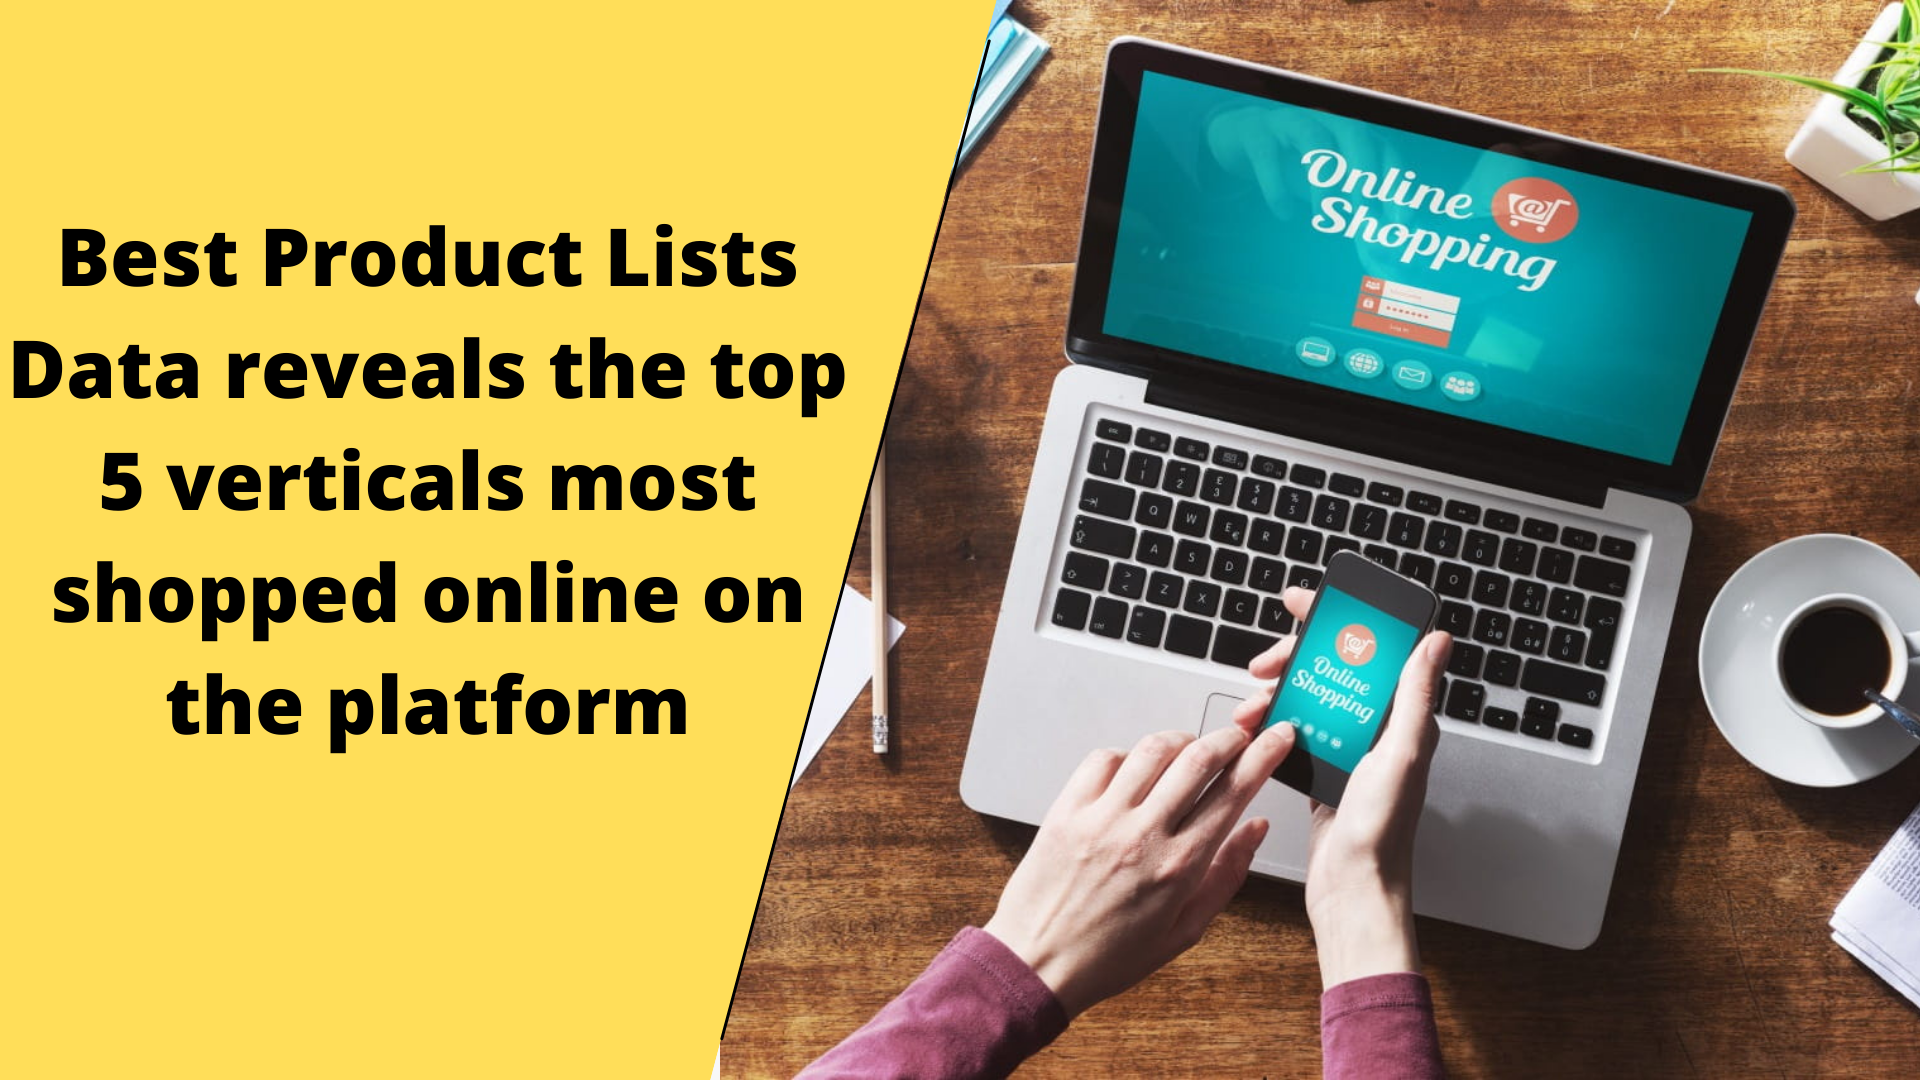 Best Product Lists Data reveals the top 5 verticals most shopped online on the platform 1